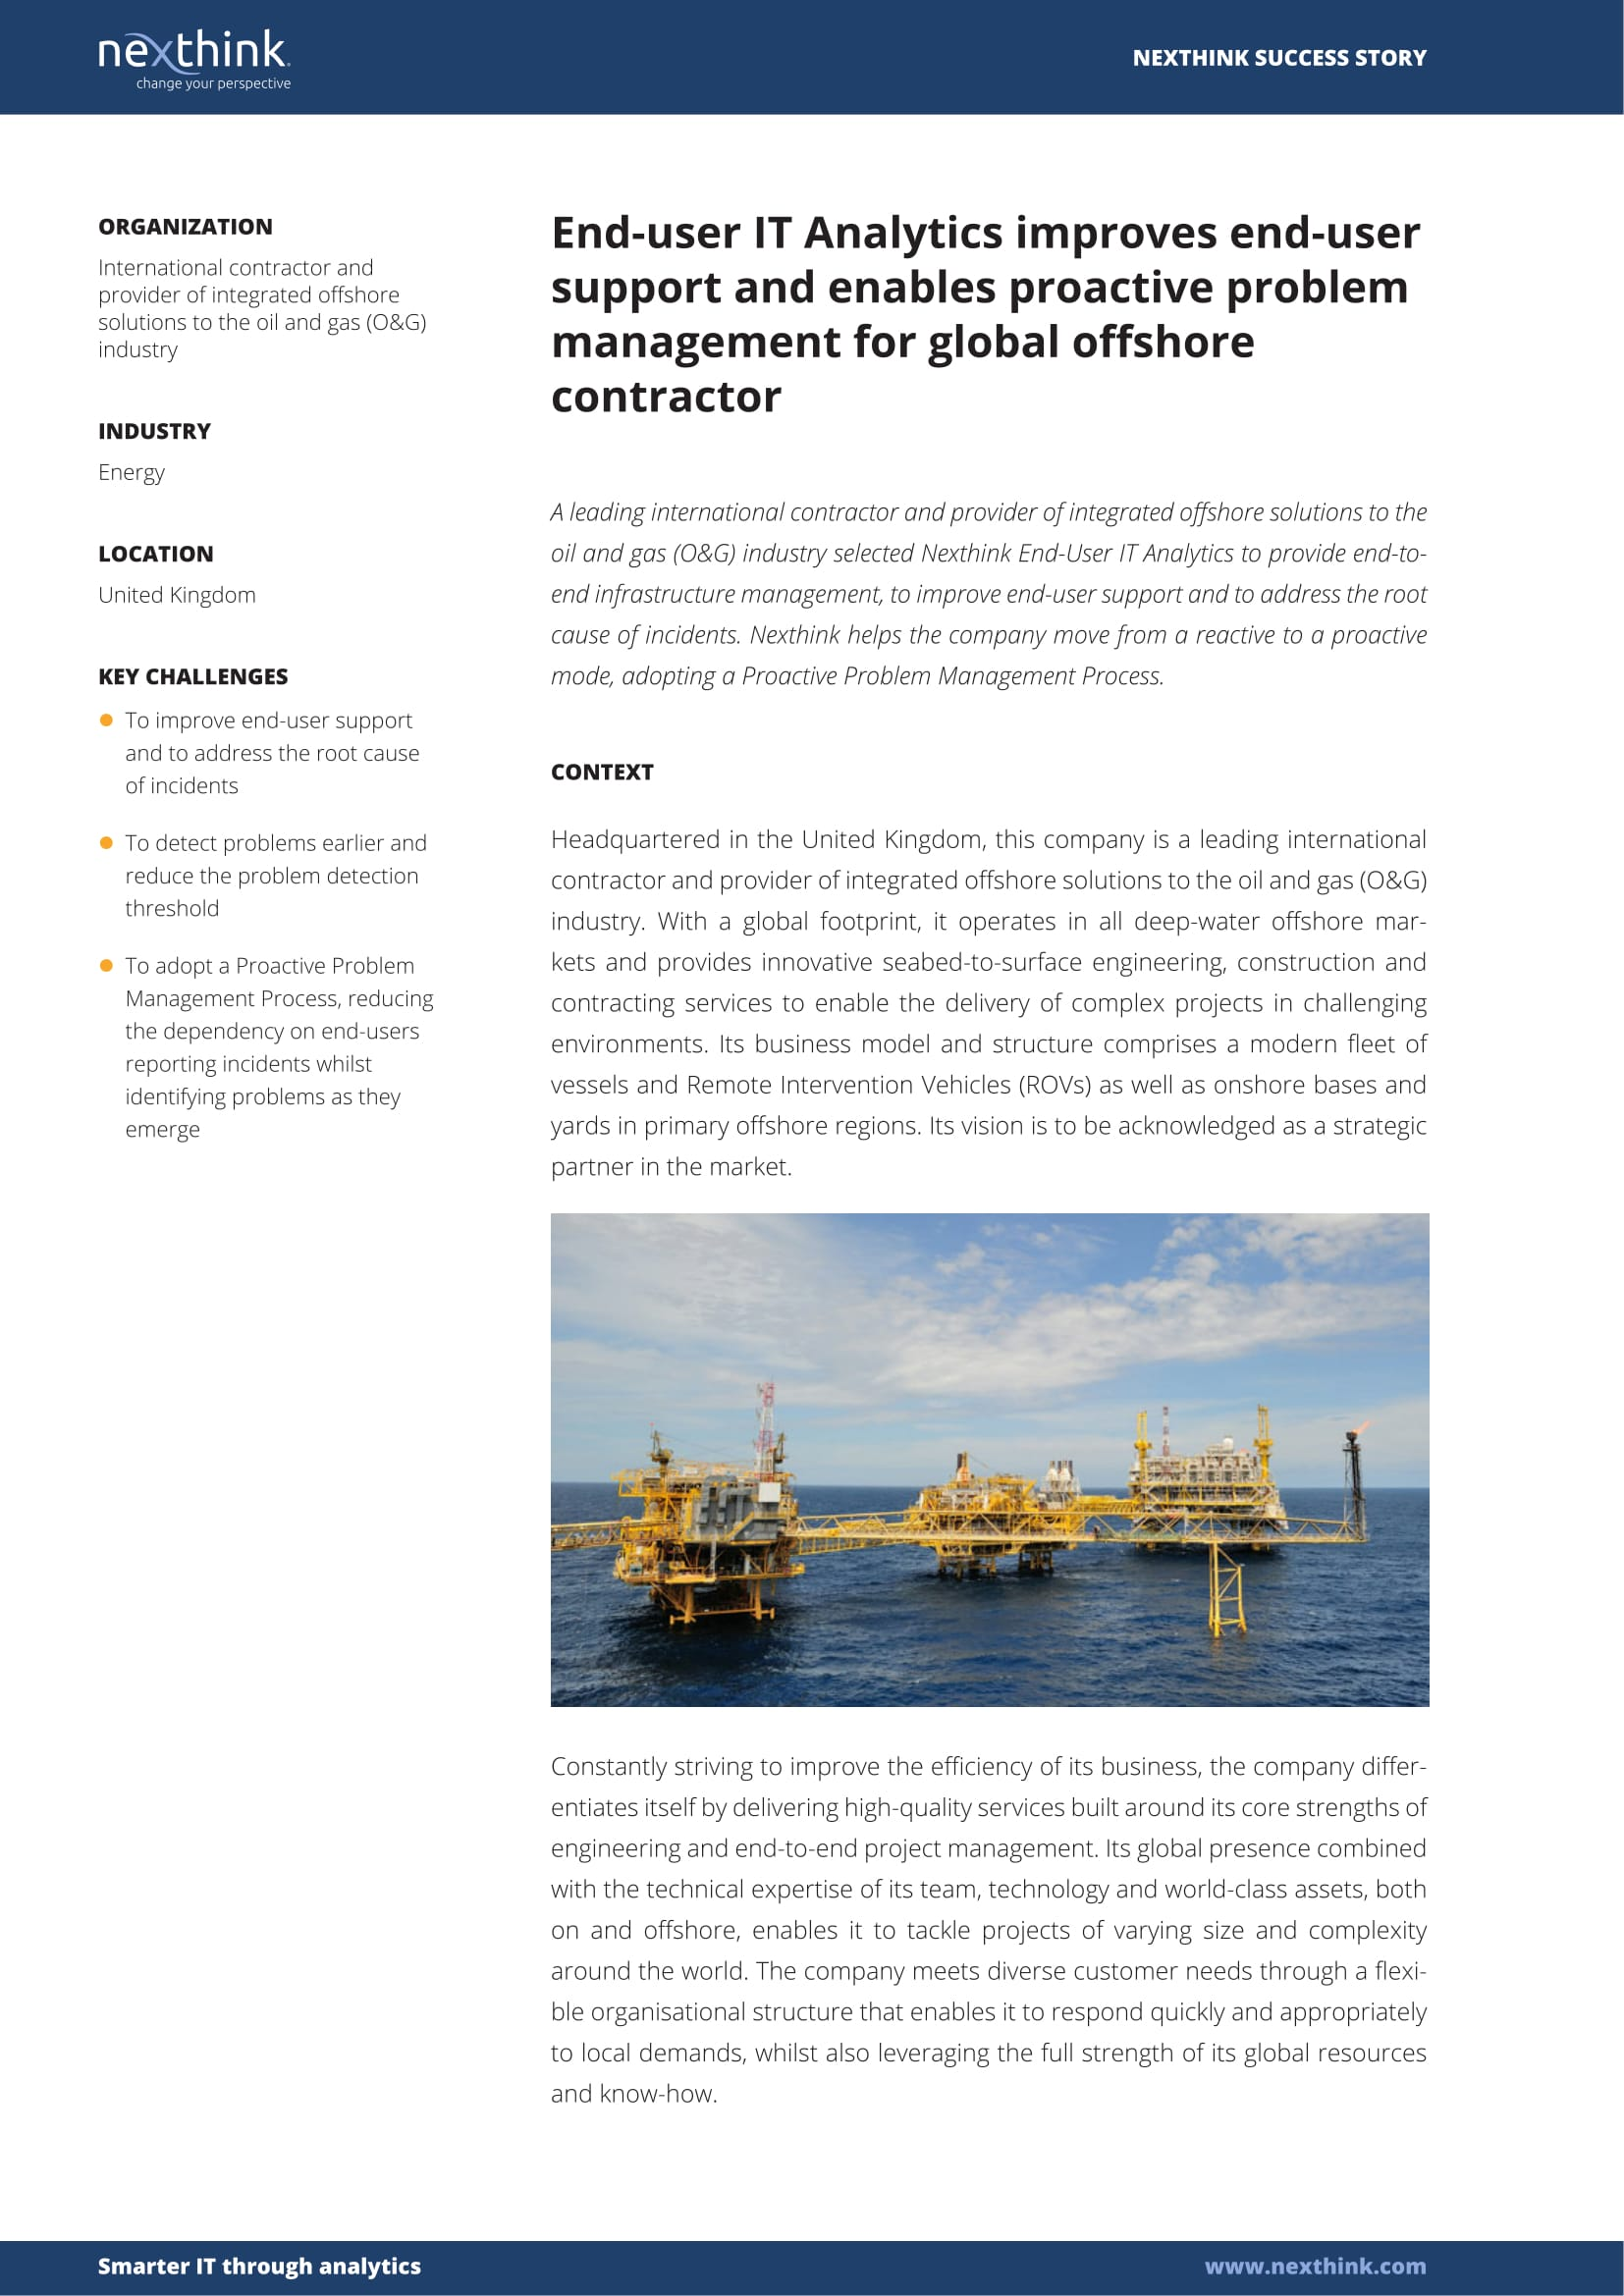 End-user IT Analytics improves end-user support and enables proactive problem management for global offshore contractor